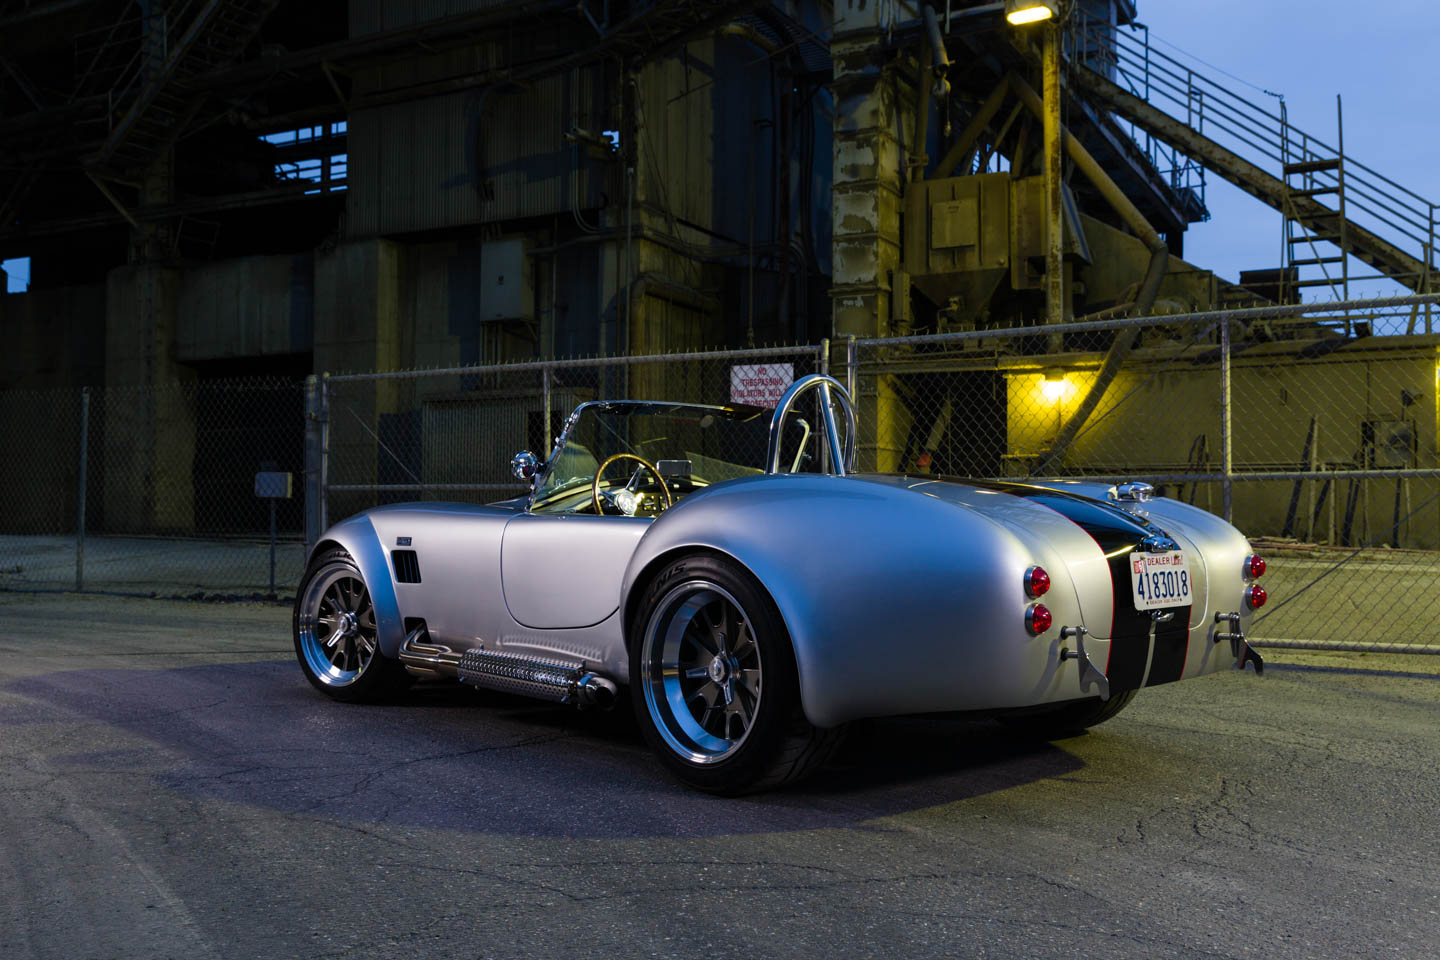 Silver Shelby Cobra by a factory